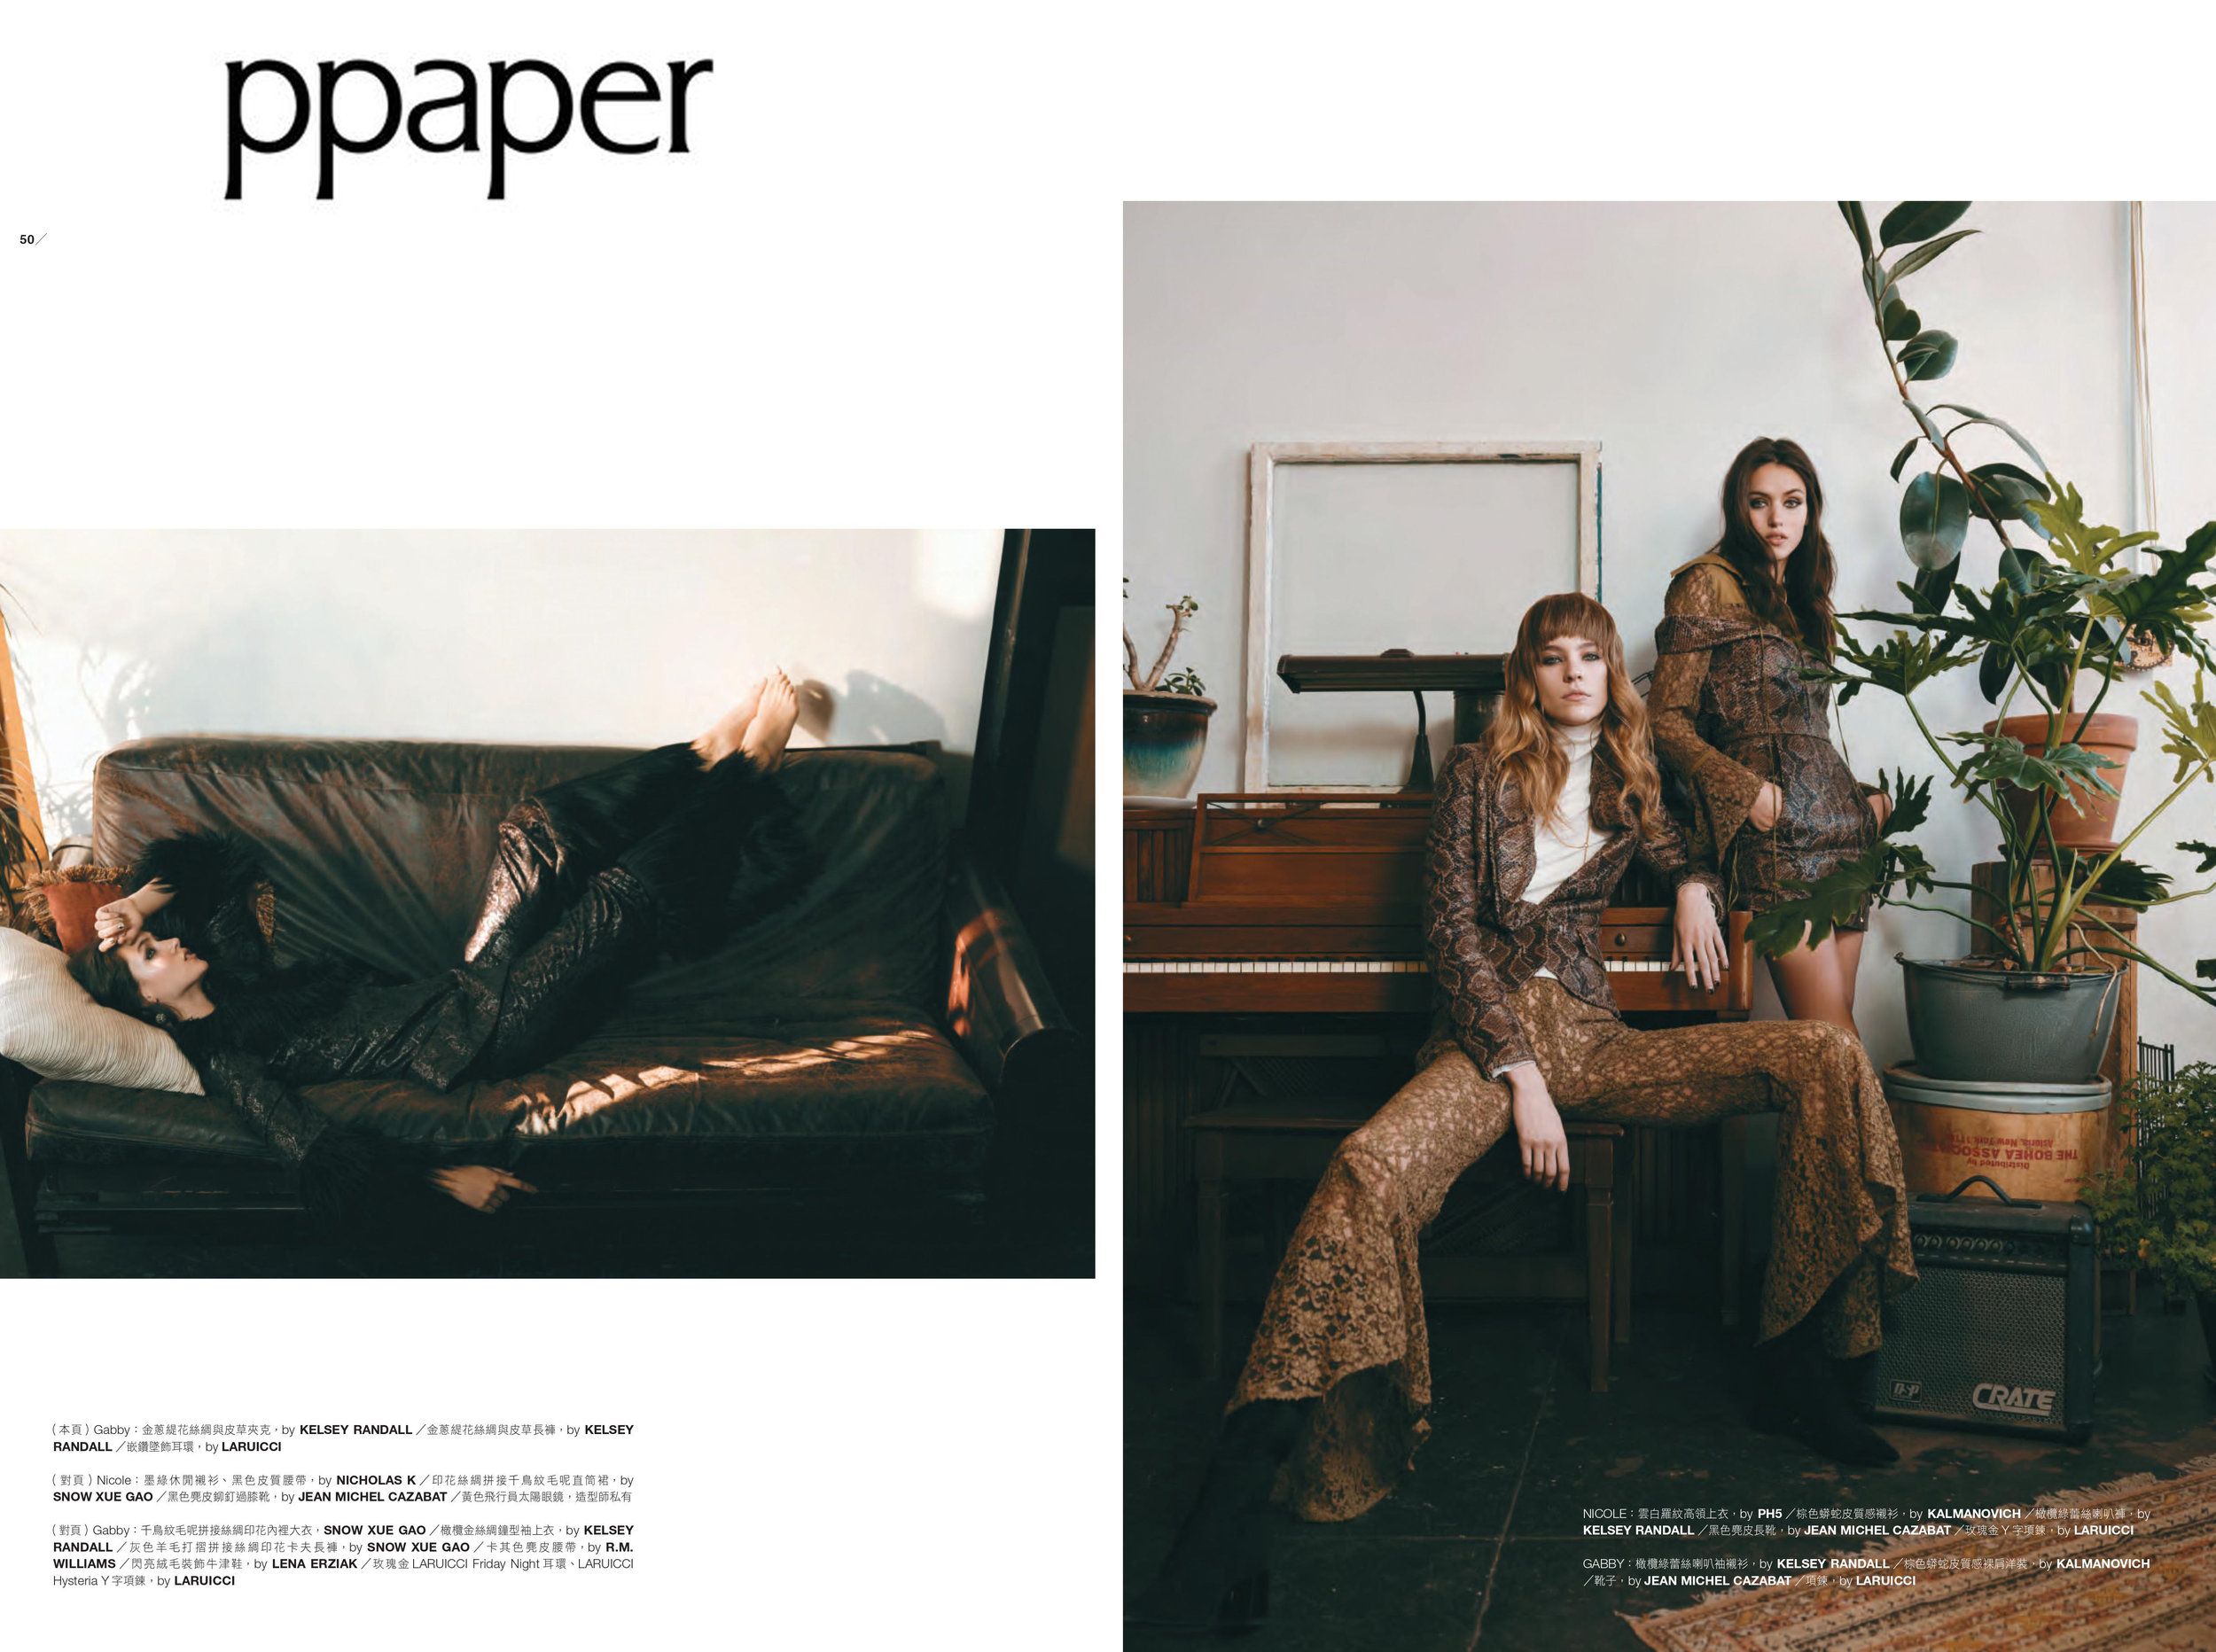 PPAPER Magazine Editorial Taiwan Featuring Kelsey Randall Brocade and Faux Fur Suit Olive Lace Pants Blouse Made in New York City Luxury Womenswear made-to-measure NYC Brooklyn